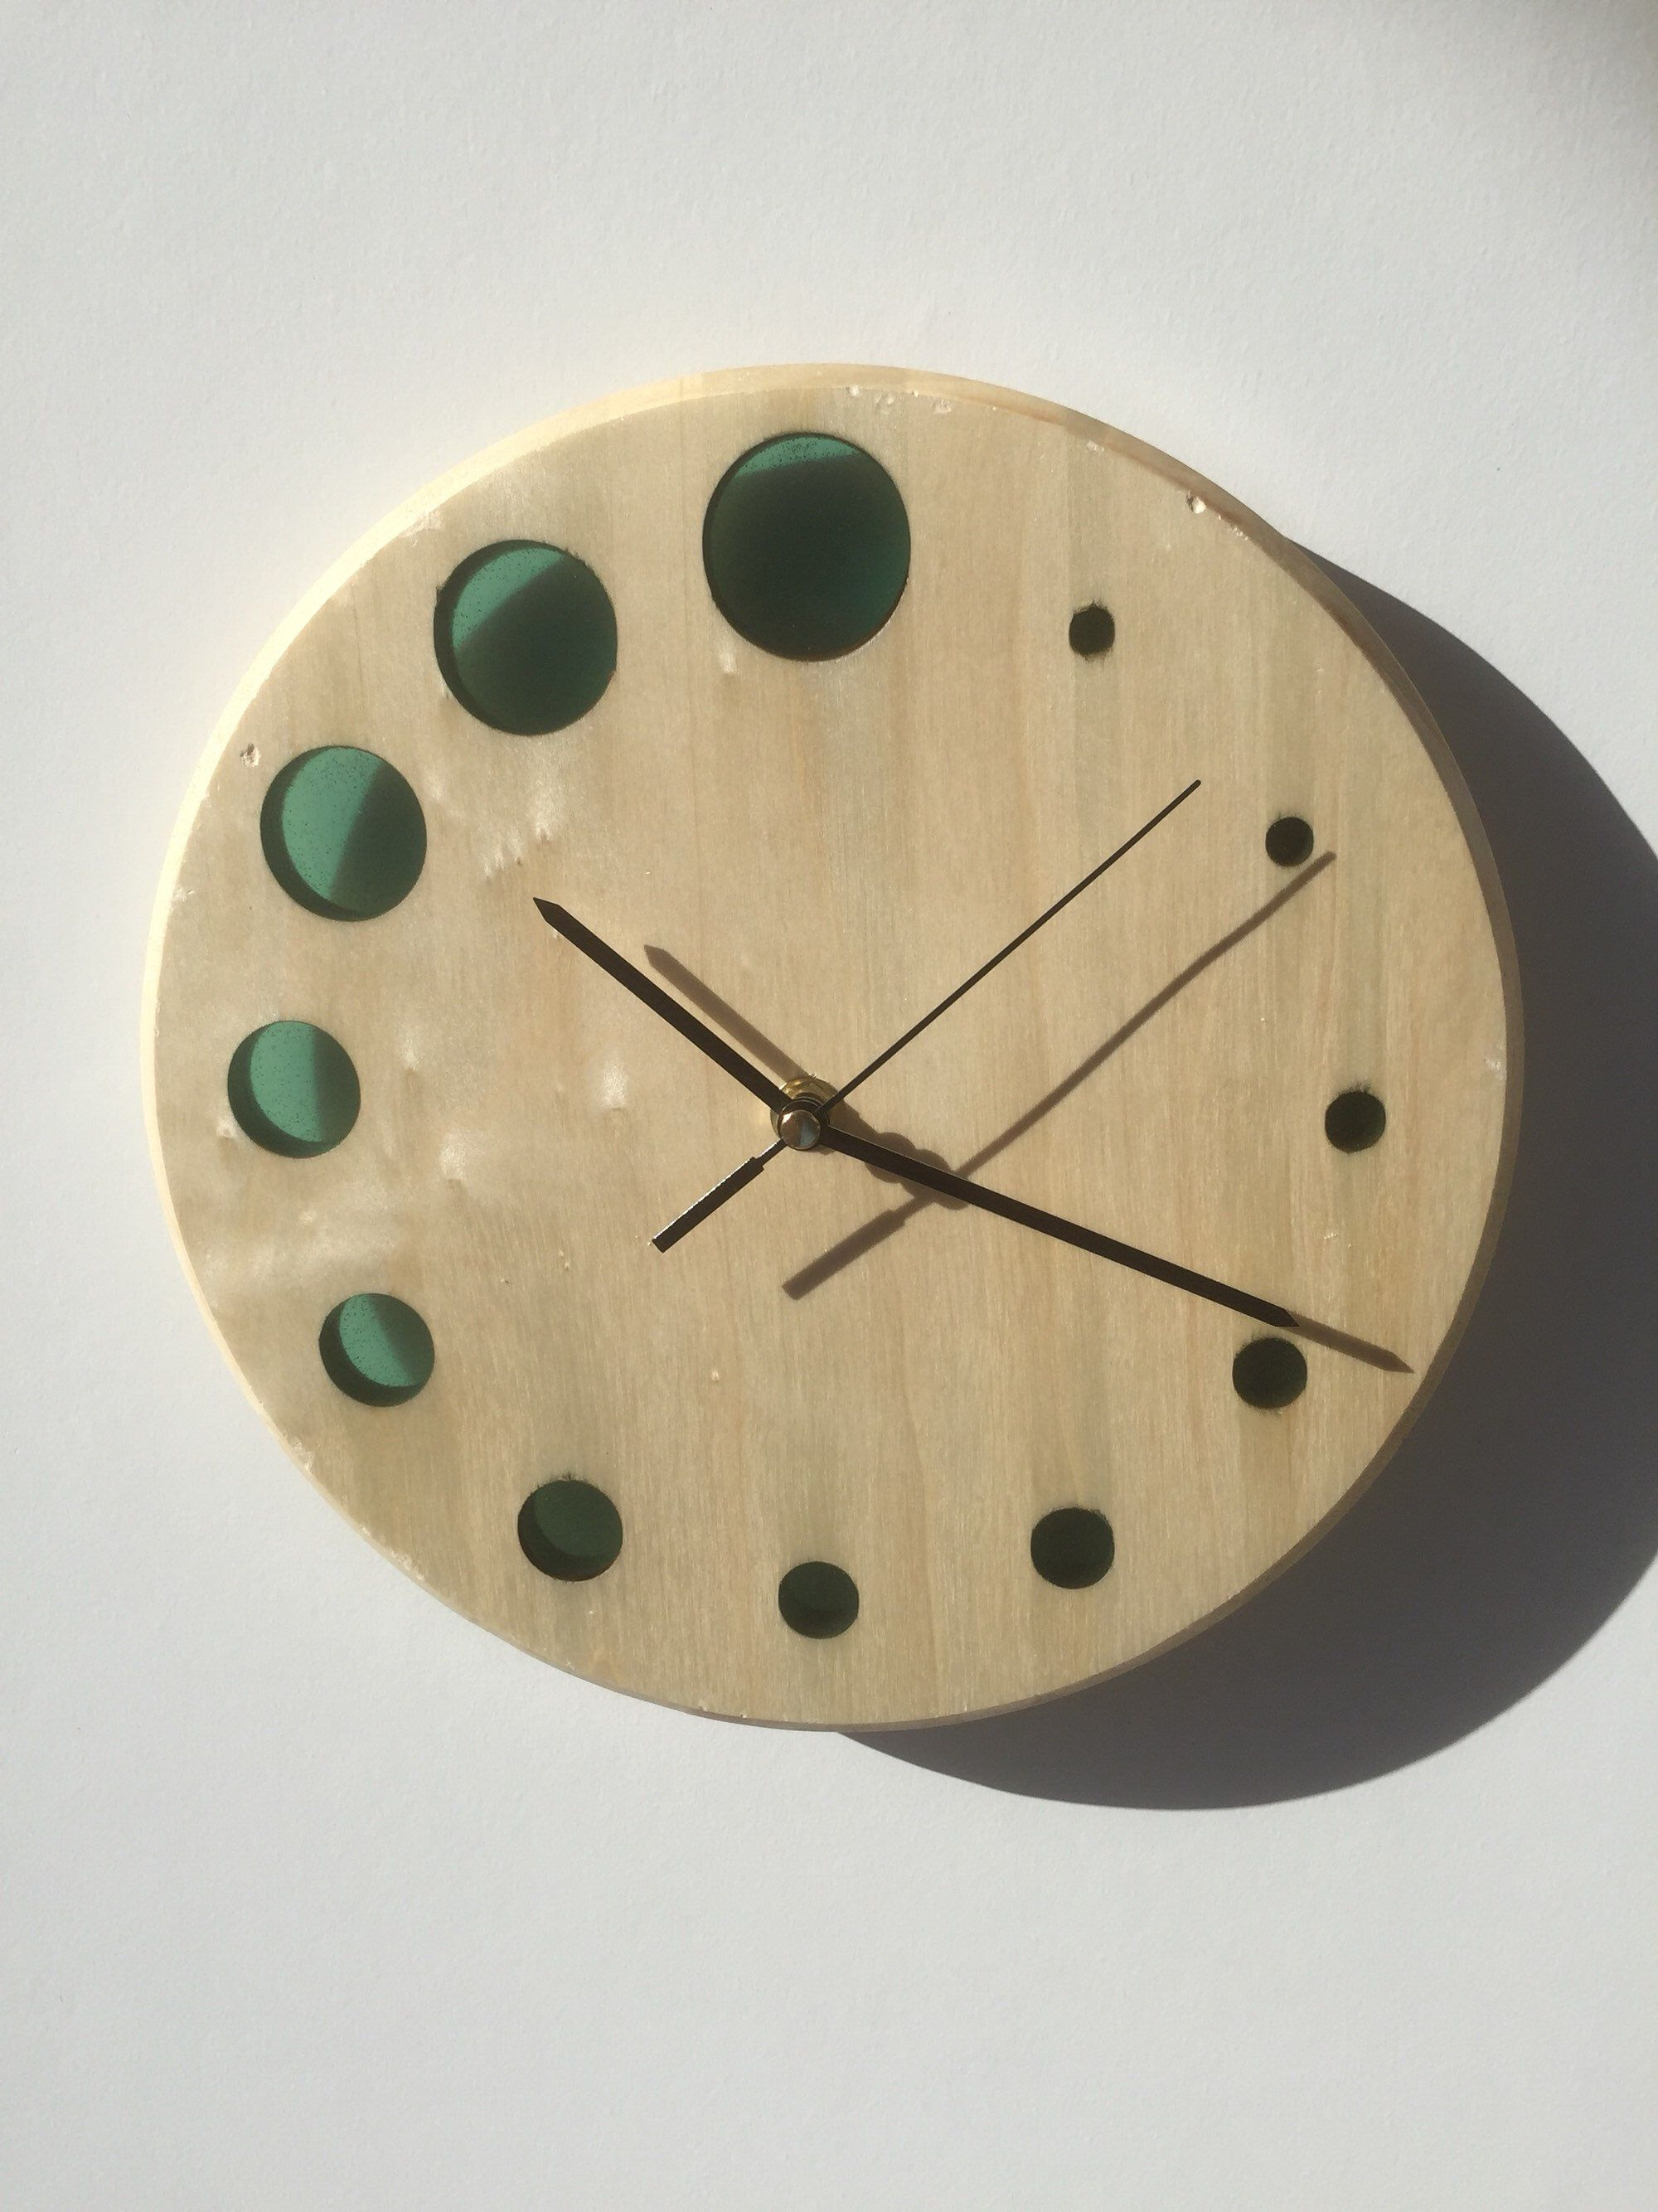 14dd8cd987 Excited to share this item from my #etsy shop: Handmade modern solid lime  wood and turquoise epoxy resin wall clock